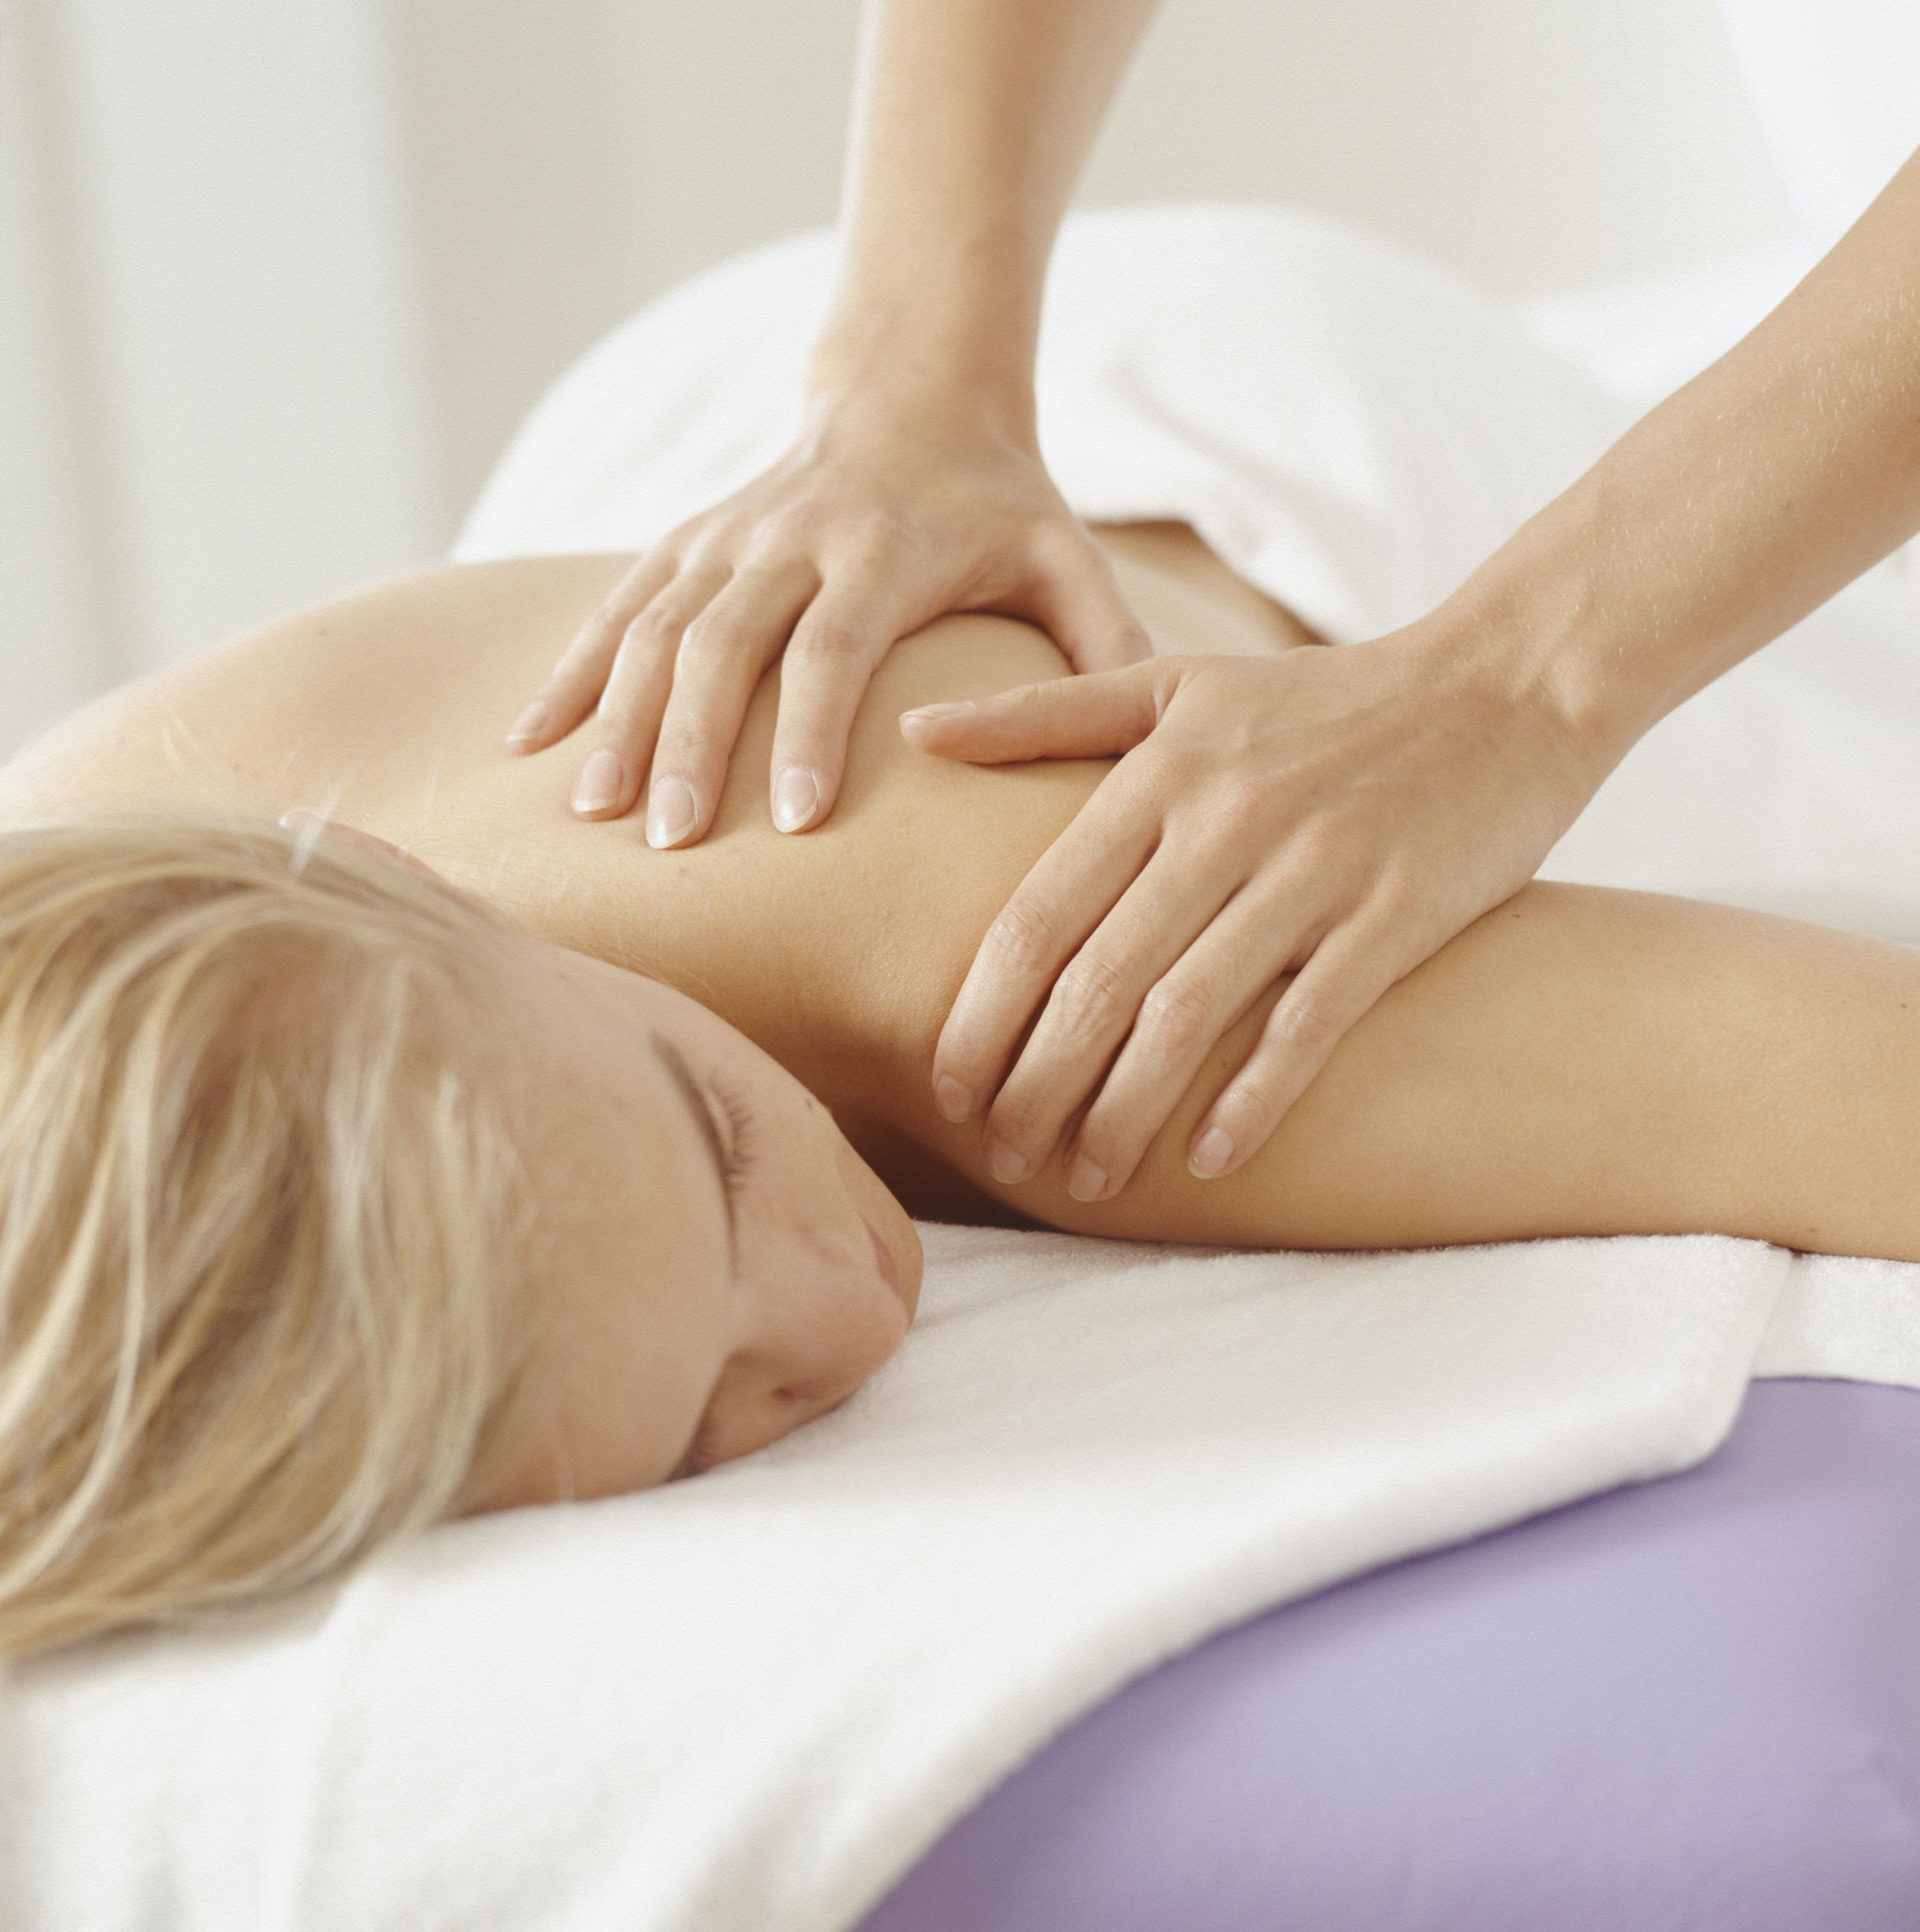 Learn How To Perform A Sensual Massage For Your Partner